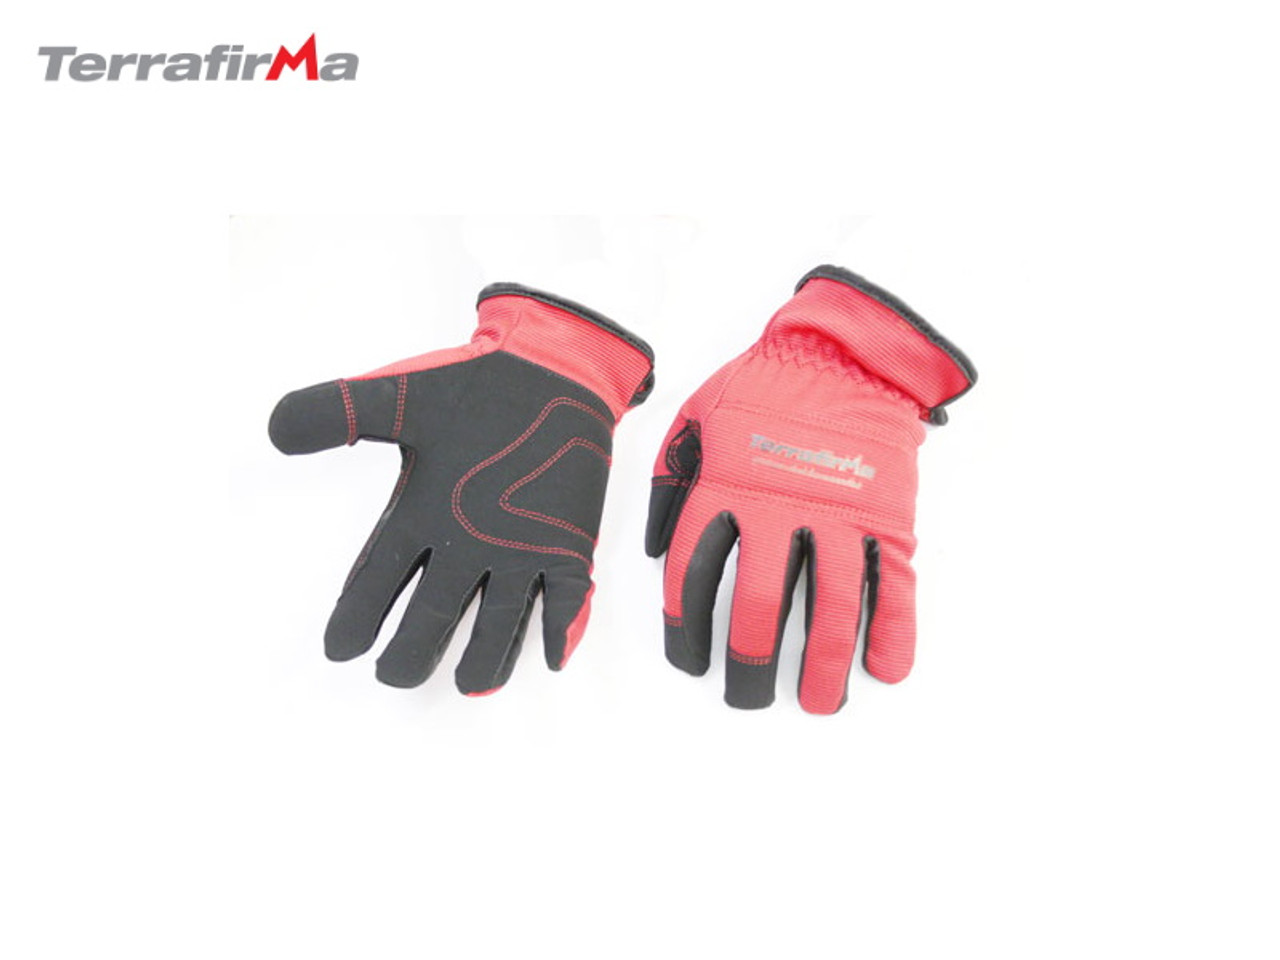 TERRAFIRMA RECOVERY GLOVES MEDIUM